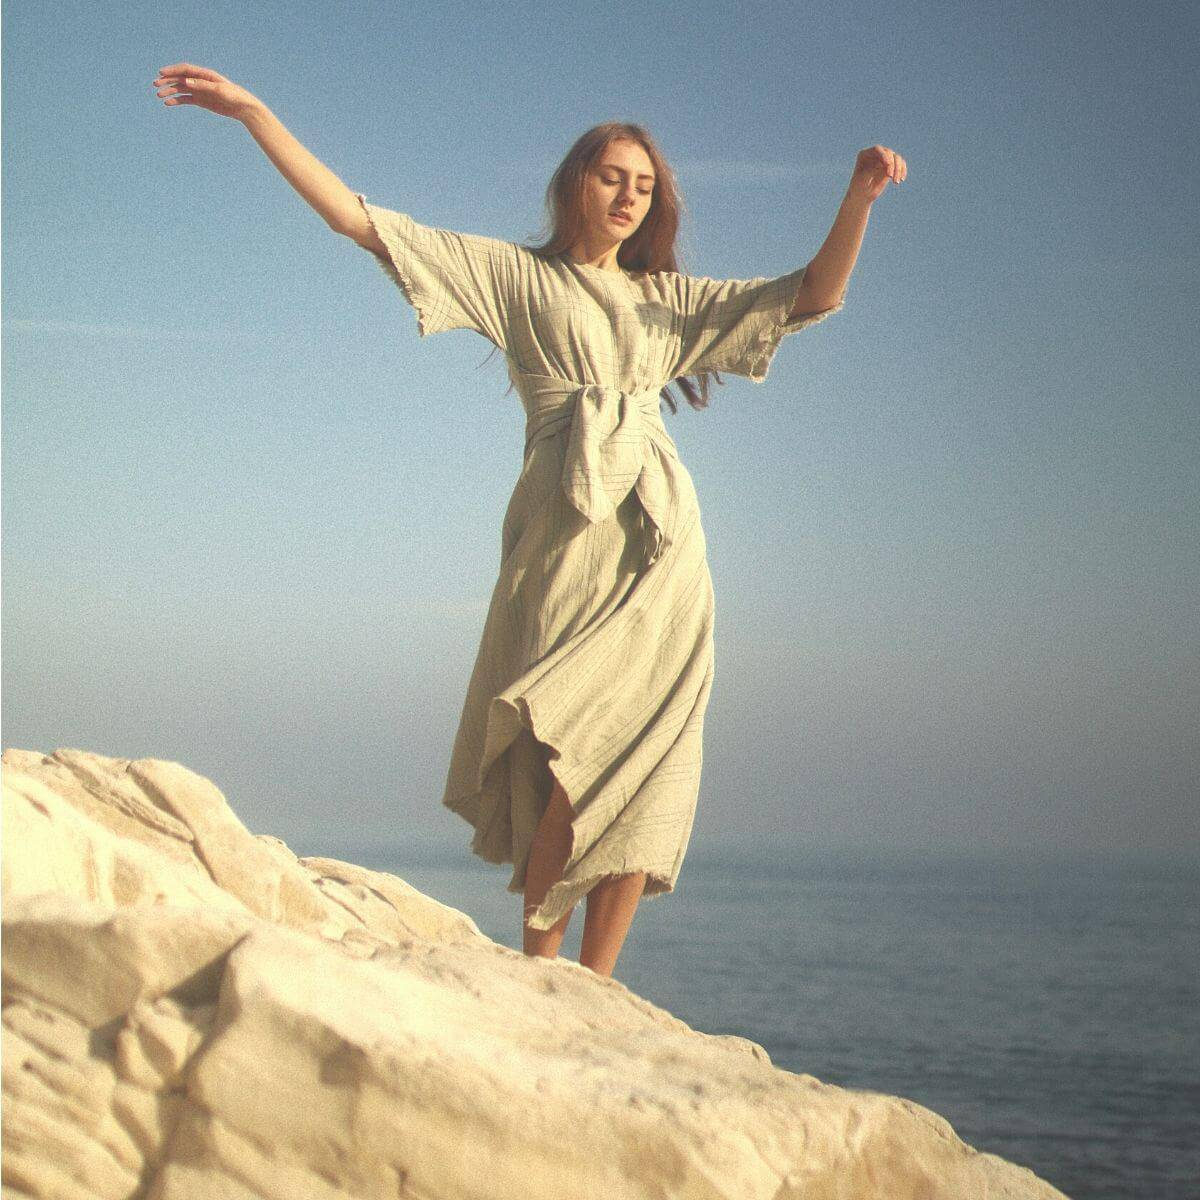 Person standing on a rock with arms in the air.